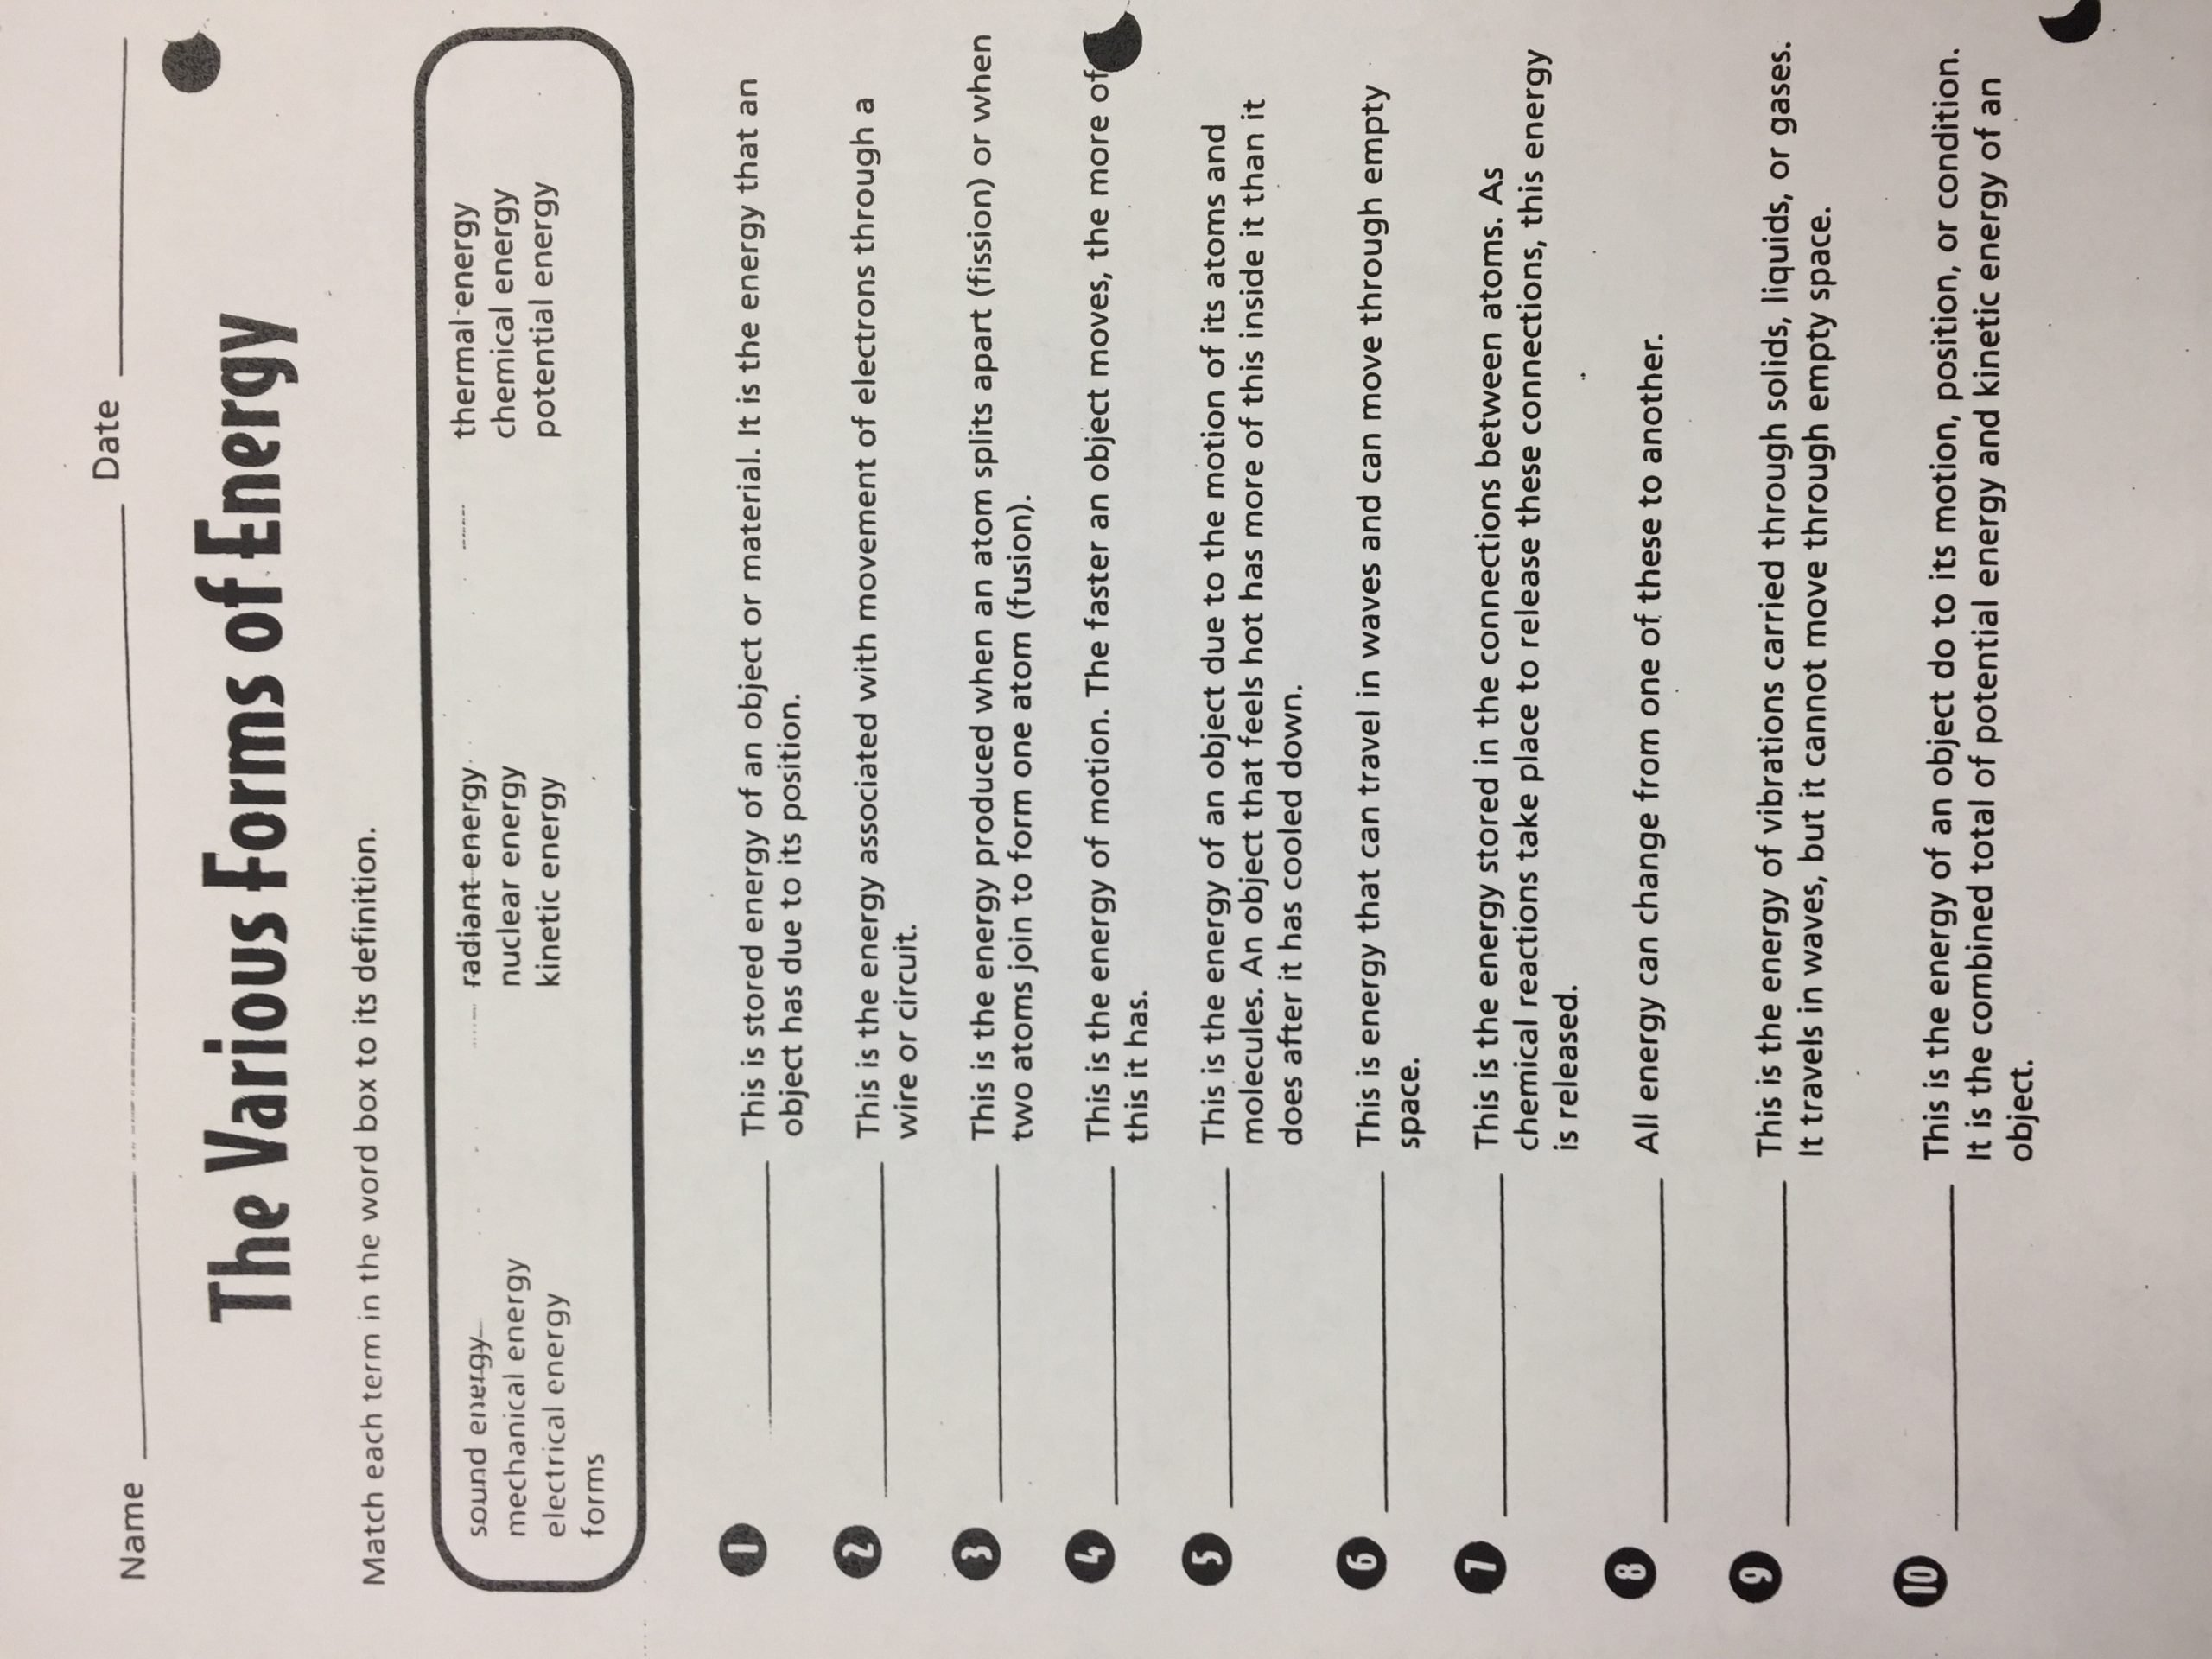 Energy Worksheets for 4th Grade Michelle Hufstetler Bainbridge Middle School